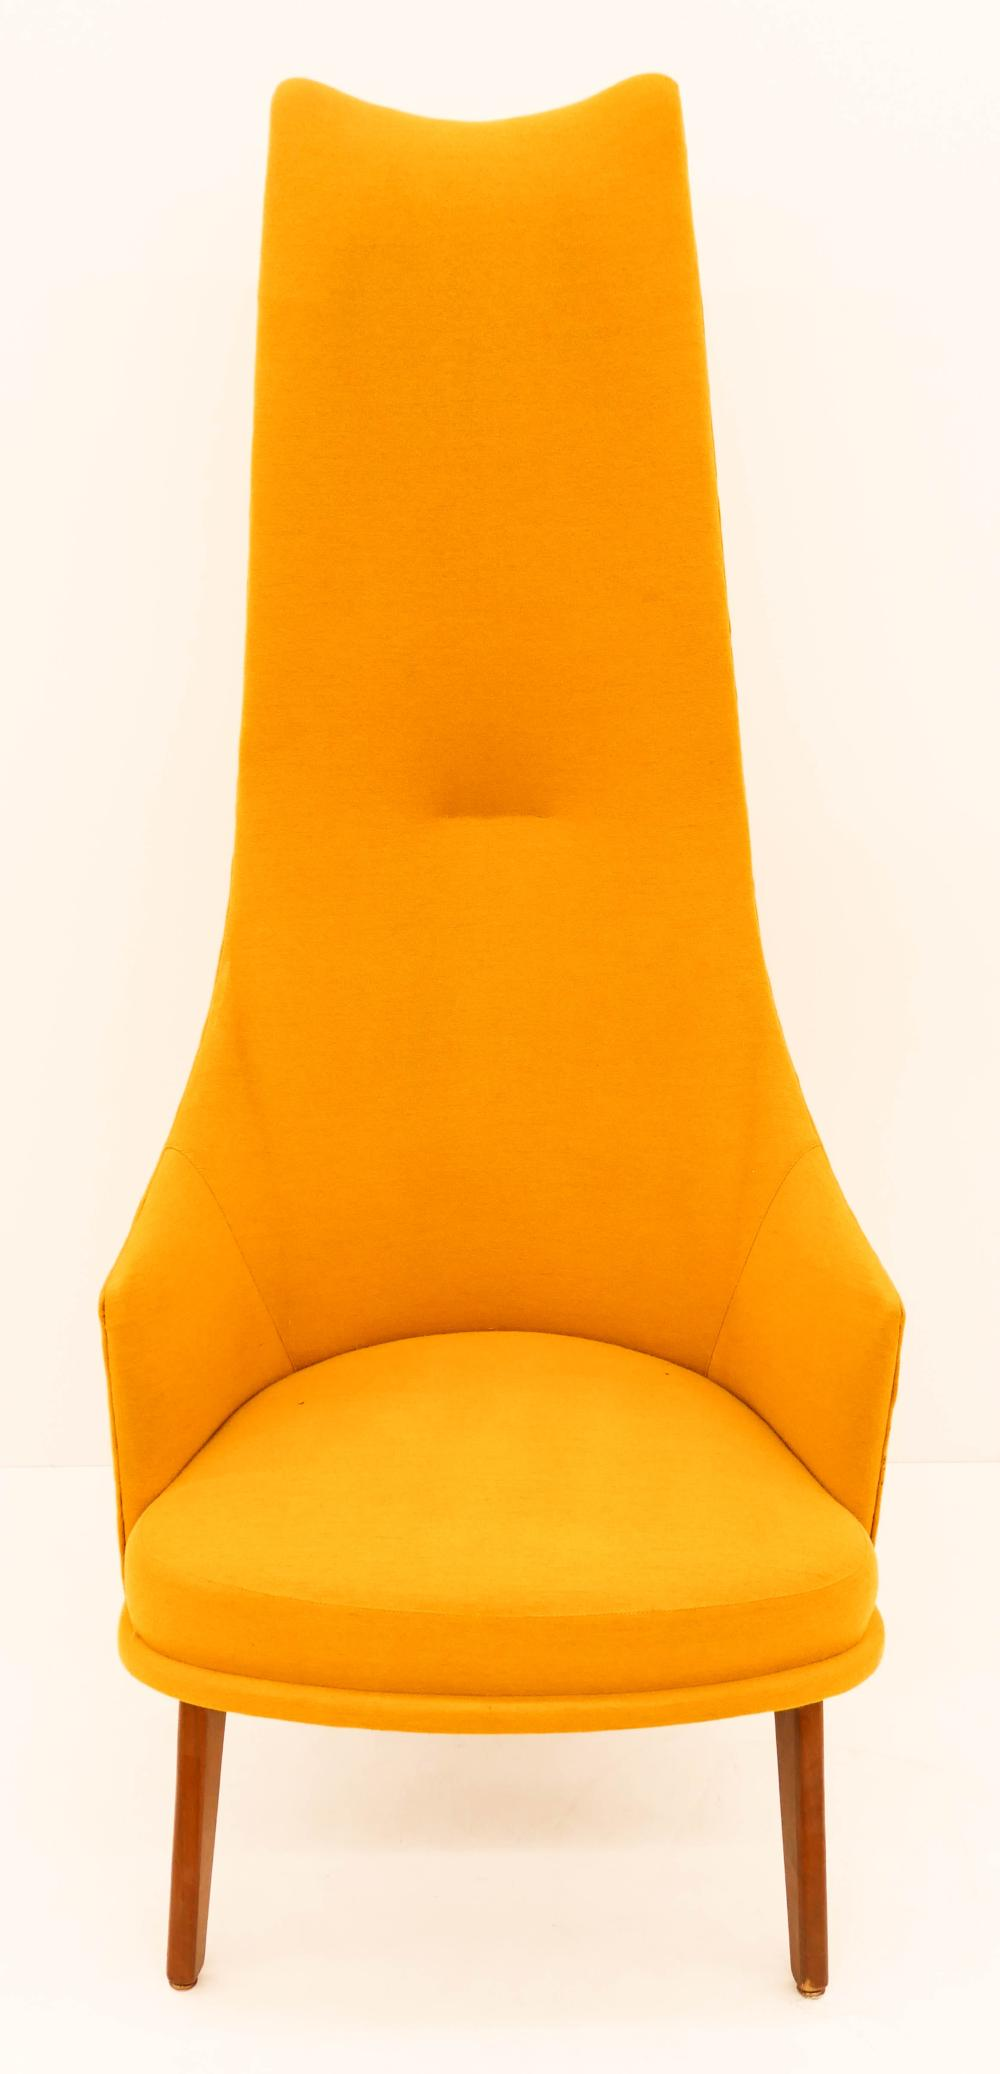 Wondrous Adrian Pearsall For Craft Assoc Yellow Lounge Chair 57X24 Camellatalisay Diy Chair Ideas Camellatalisaycom